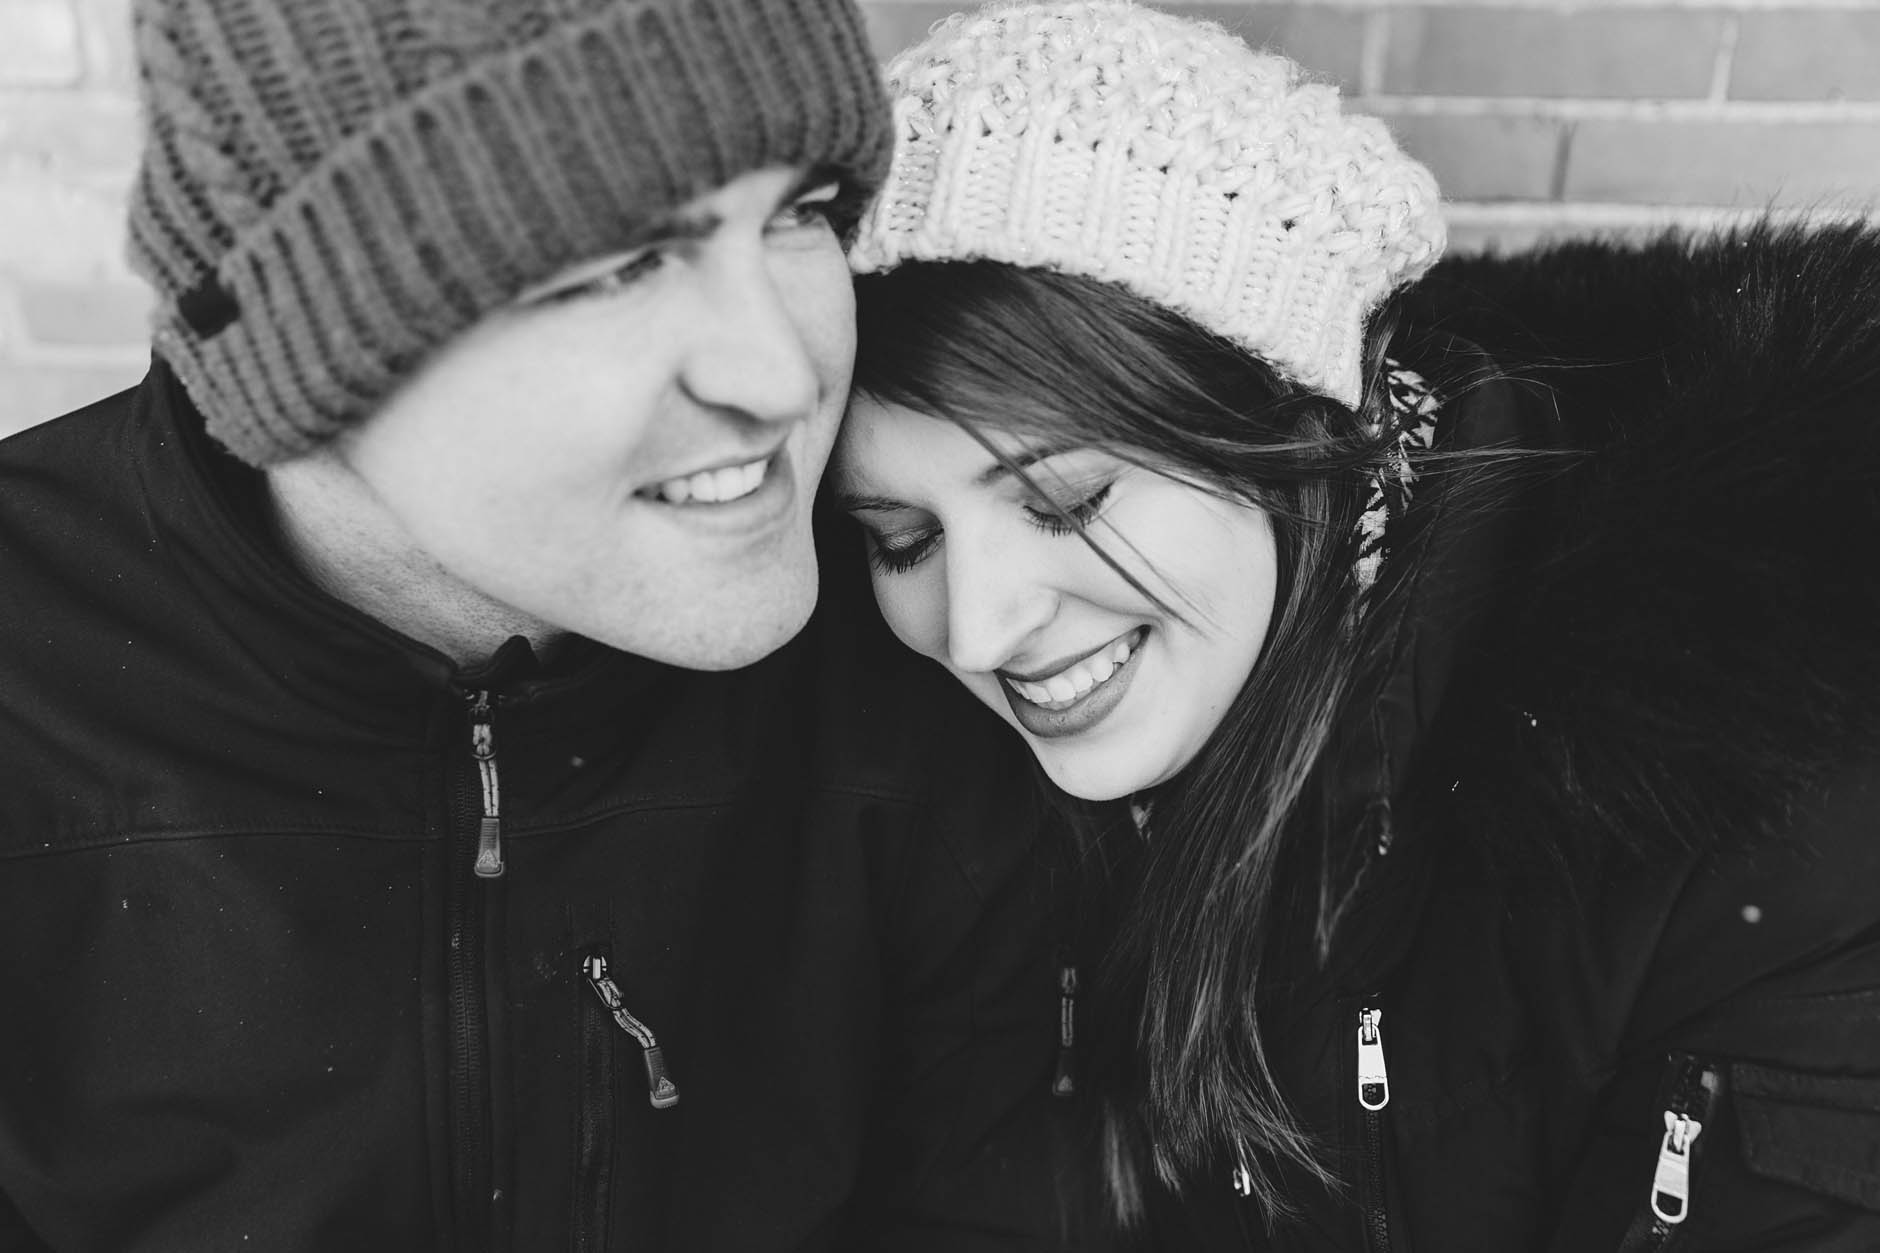 A winter engagement session in Kent with Erin & Chris.